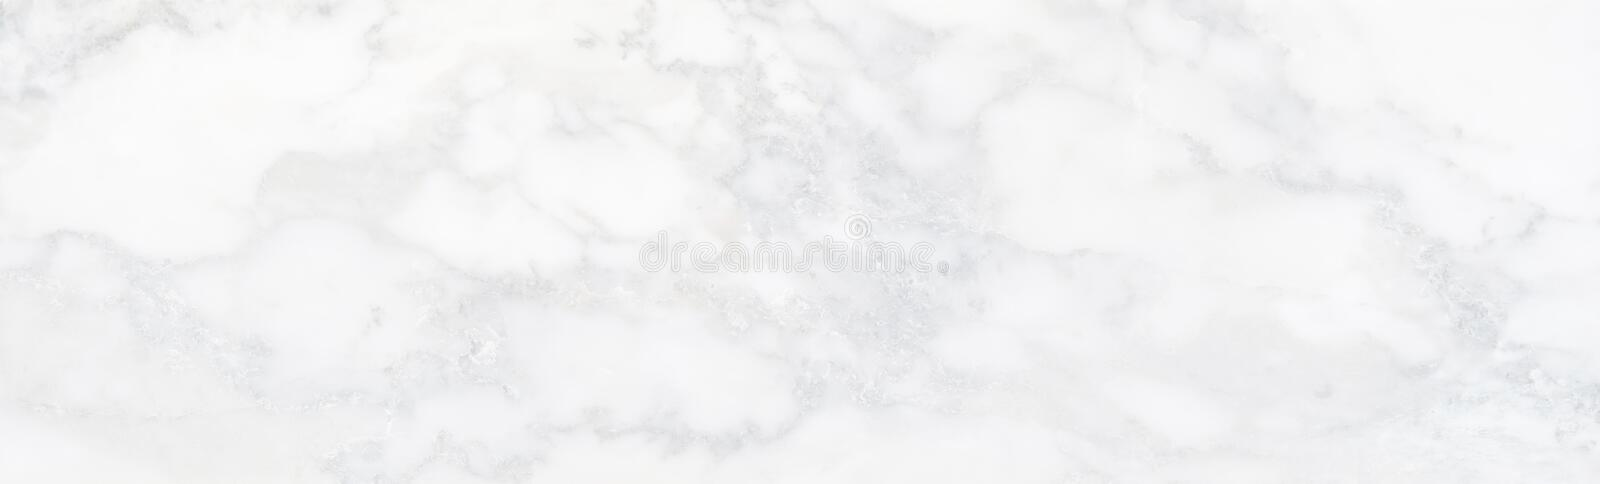 White marble texture background. Abstract marble texture natural patterns for design royalty free stock photos